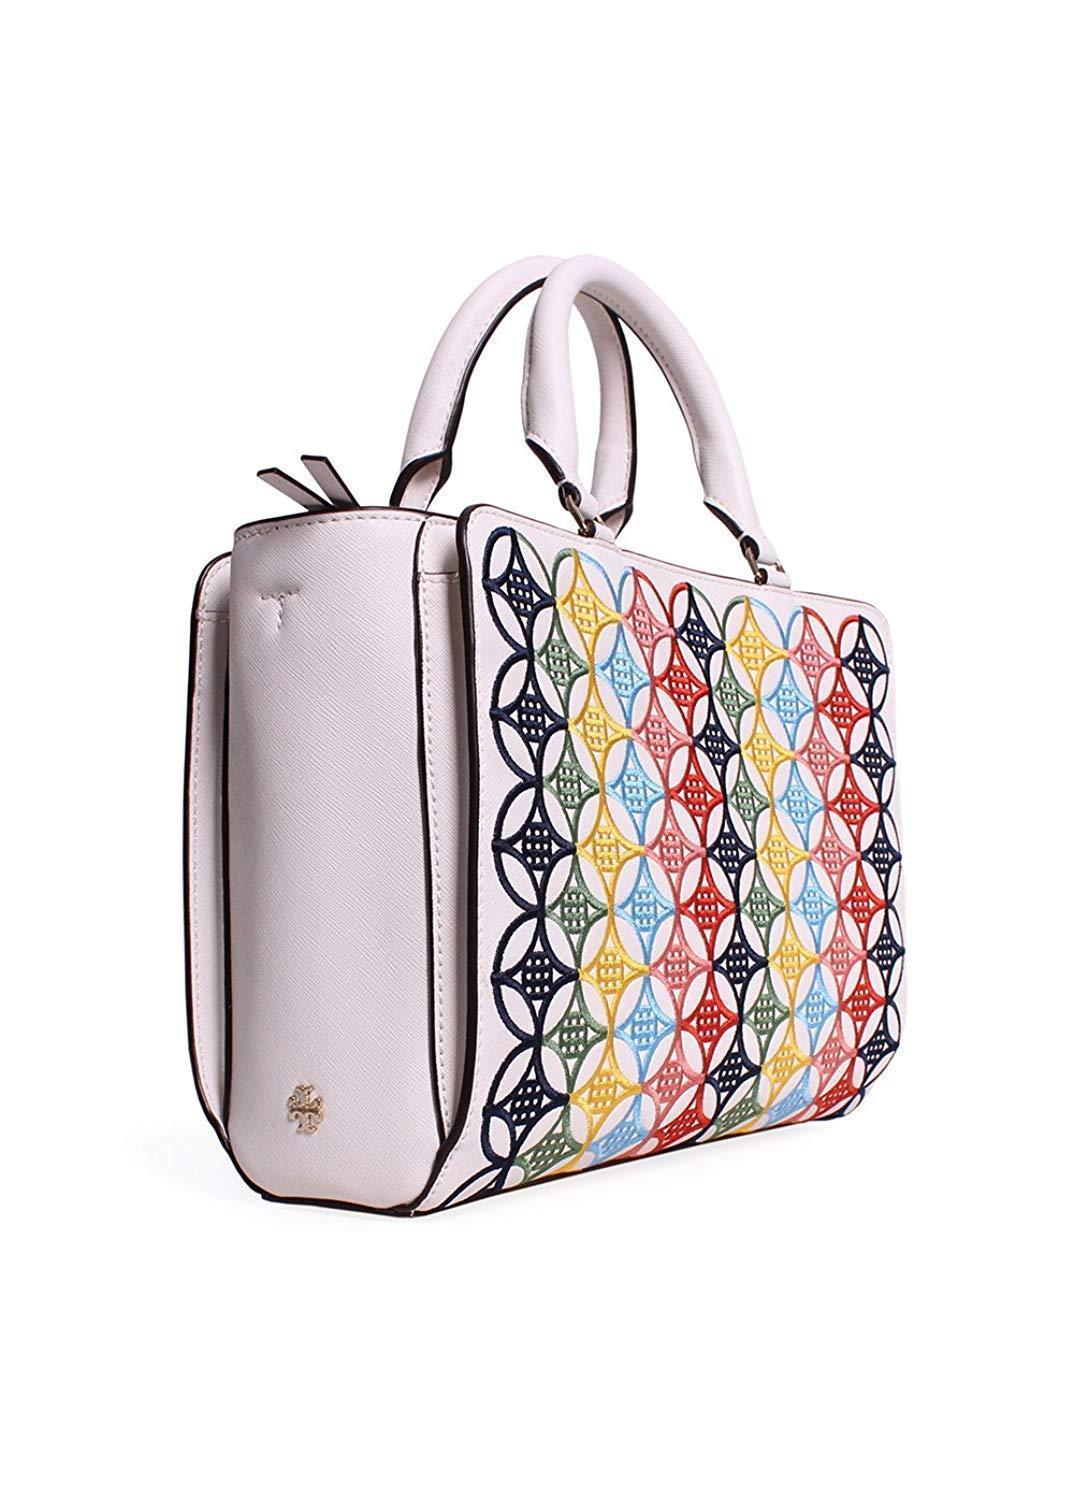 Tory Burch Robinson Embroidered Small Zip Tote in New Ivory Multi image 2